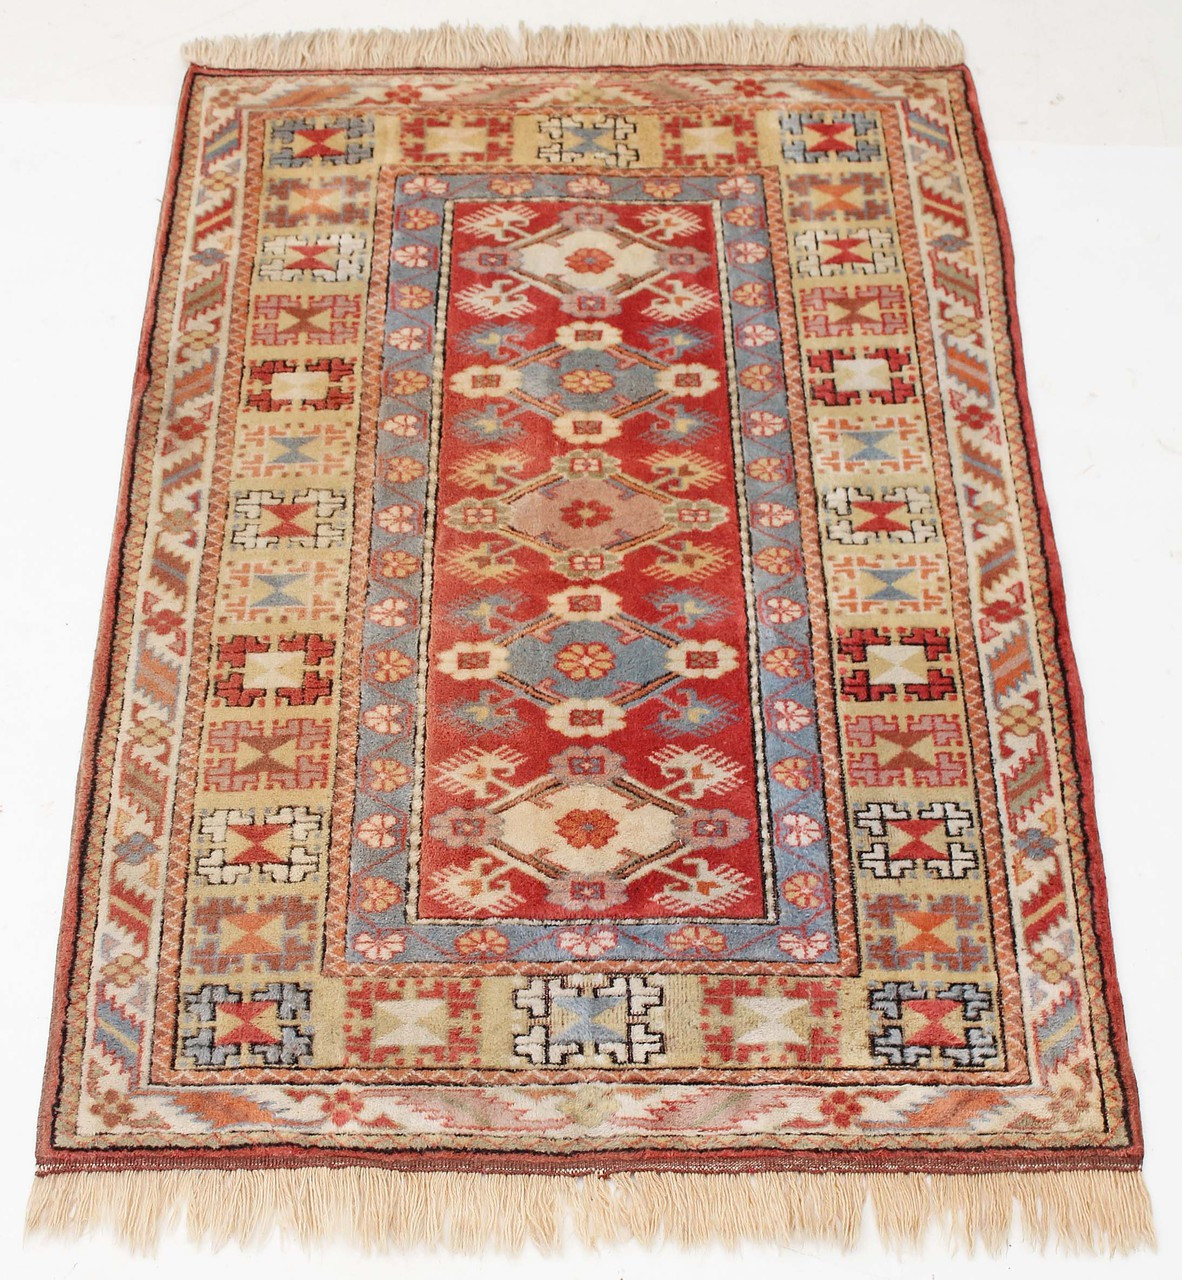 Antique Large Hand Woven Wool Rug Cream And Terracotta 4